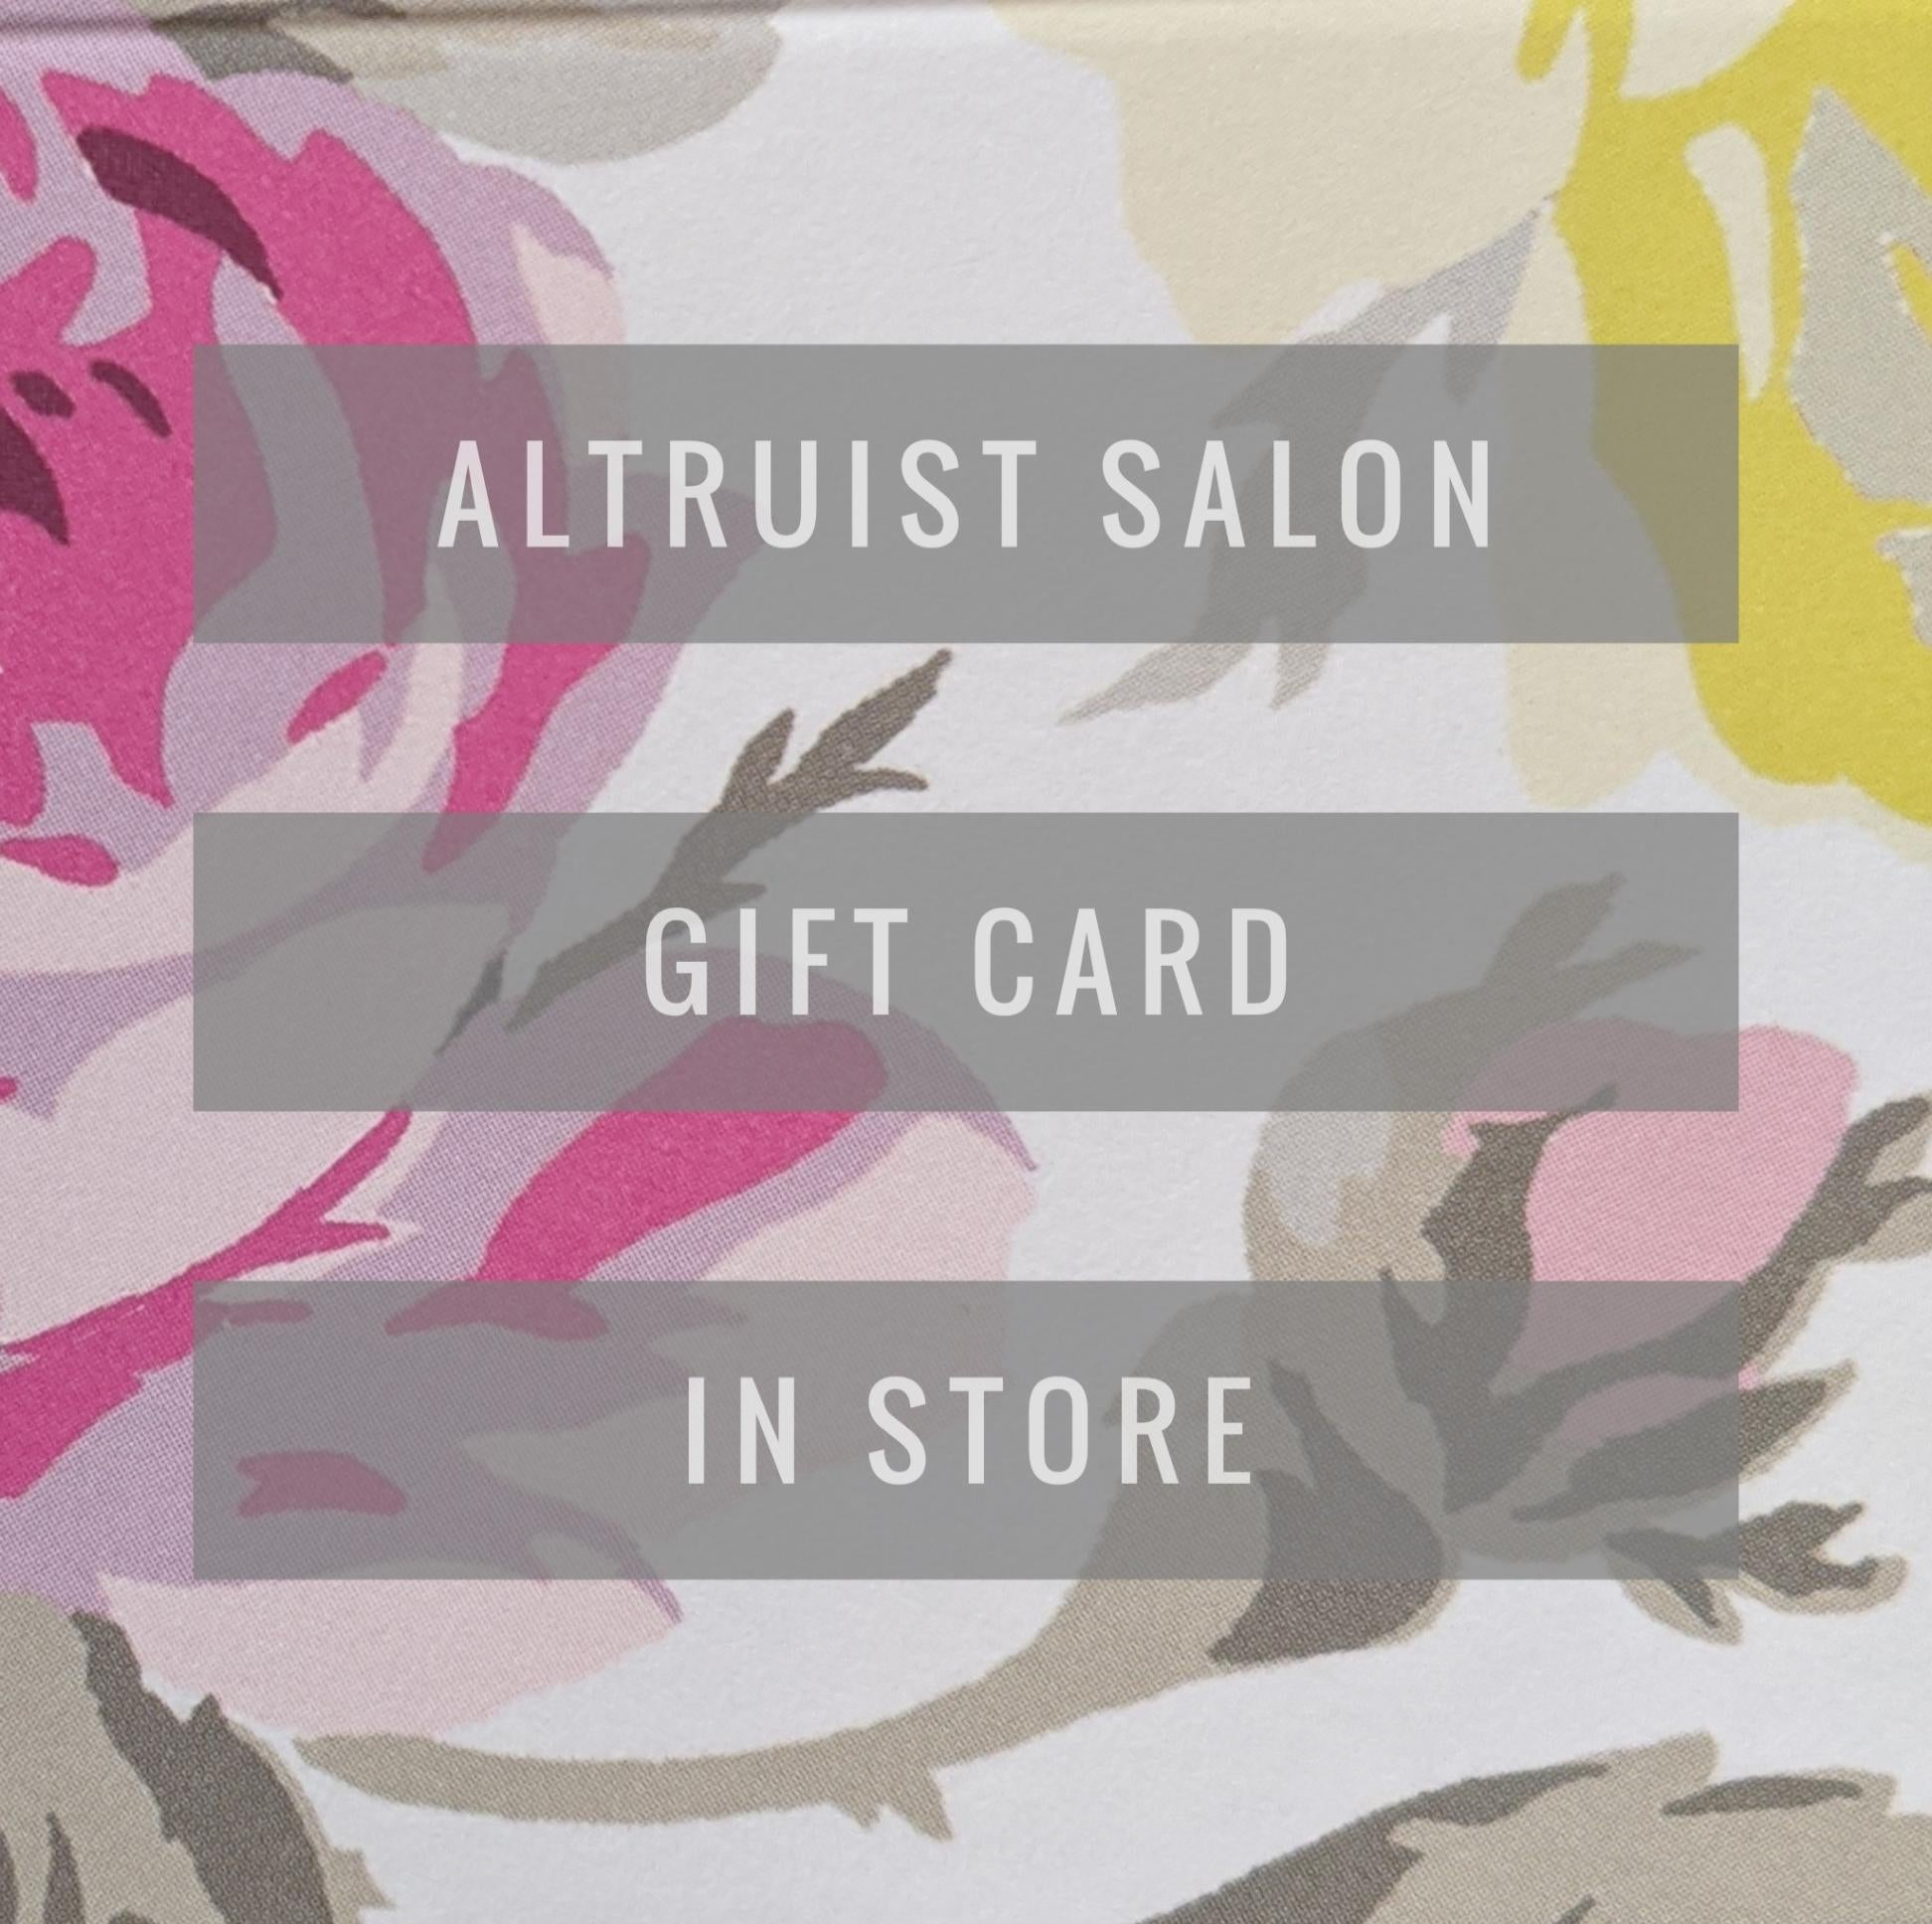 IN-STORE gift card Missoula, MT